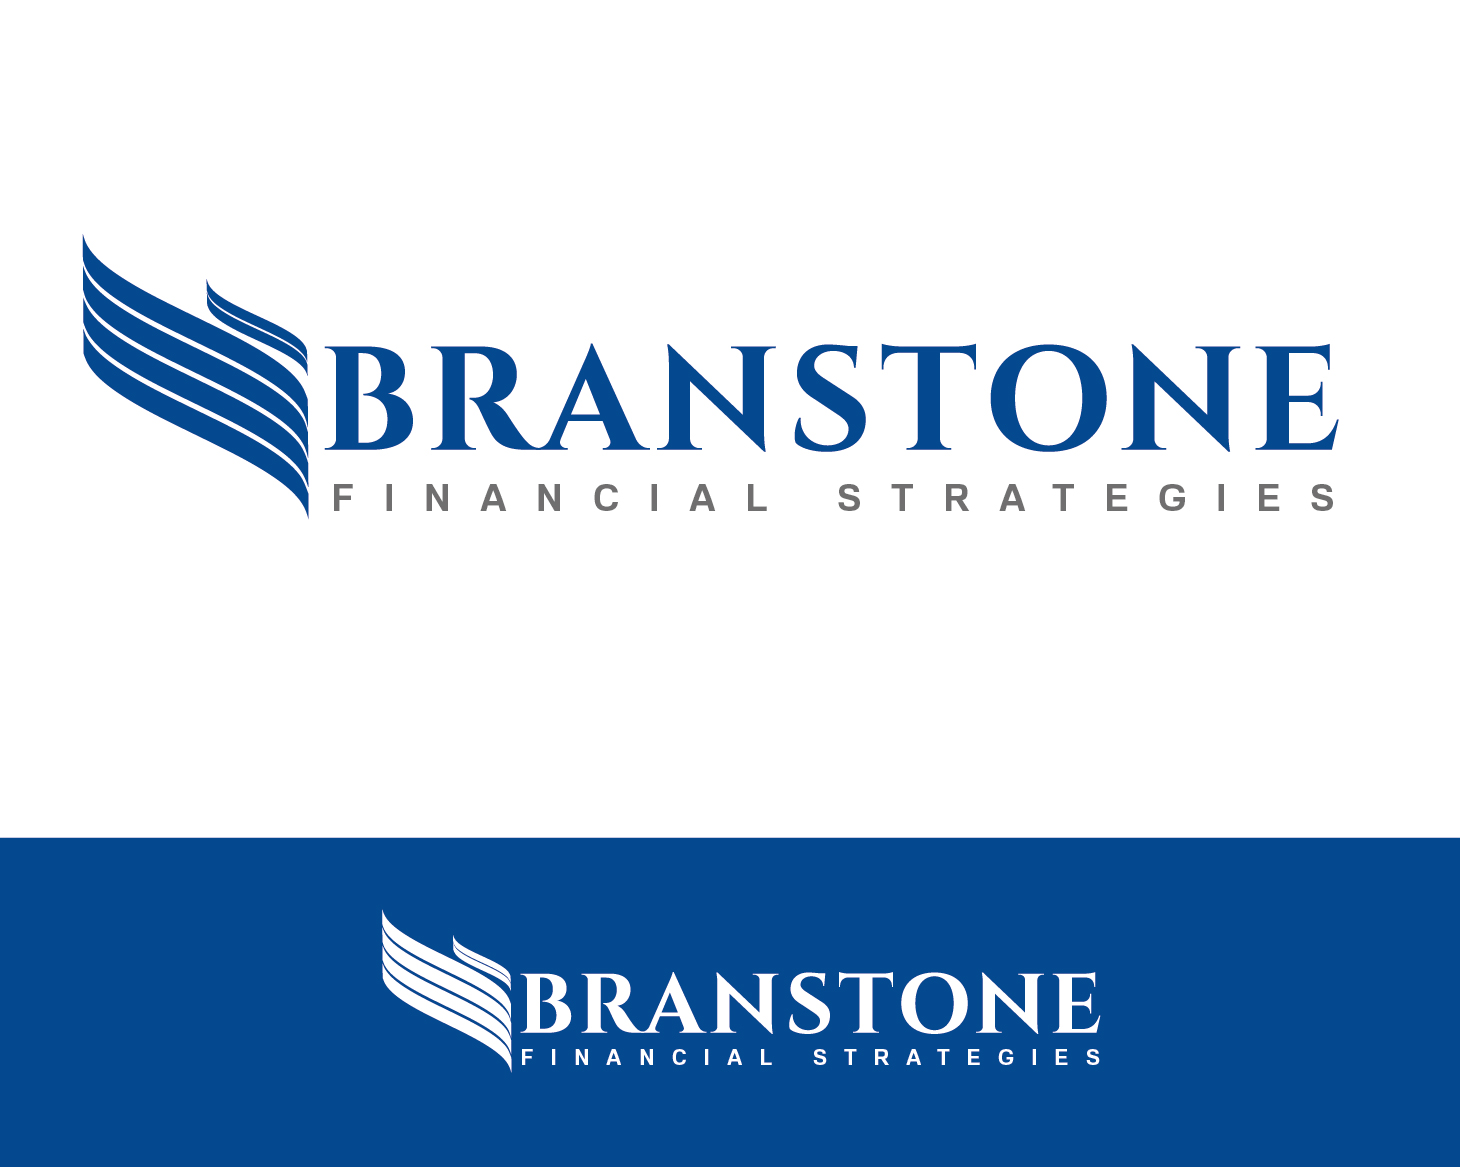 Logo Design by VENTSISLAV KOVACHEV - Entry No. 224 in the Logo Design Contest Inspiring Logo Design for Branstone Financial Strategies.